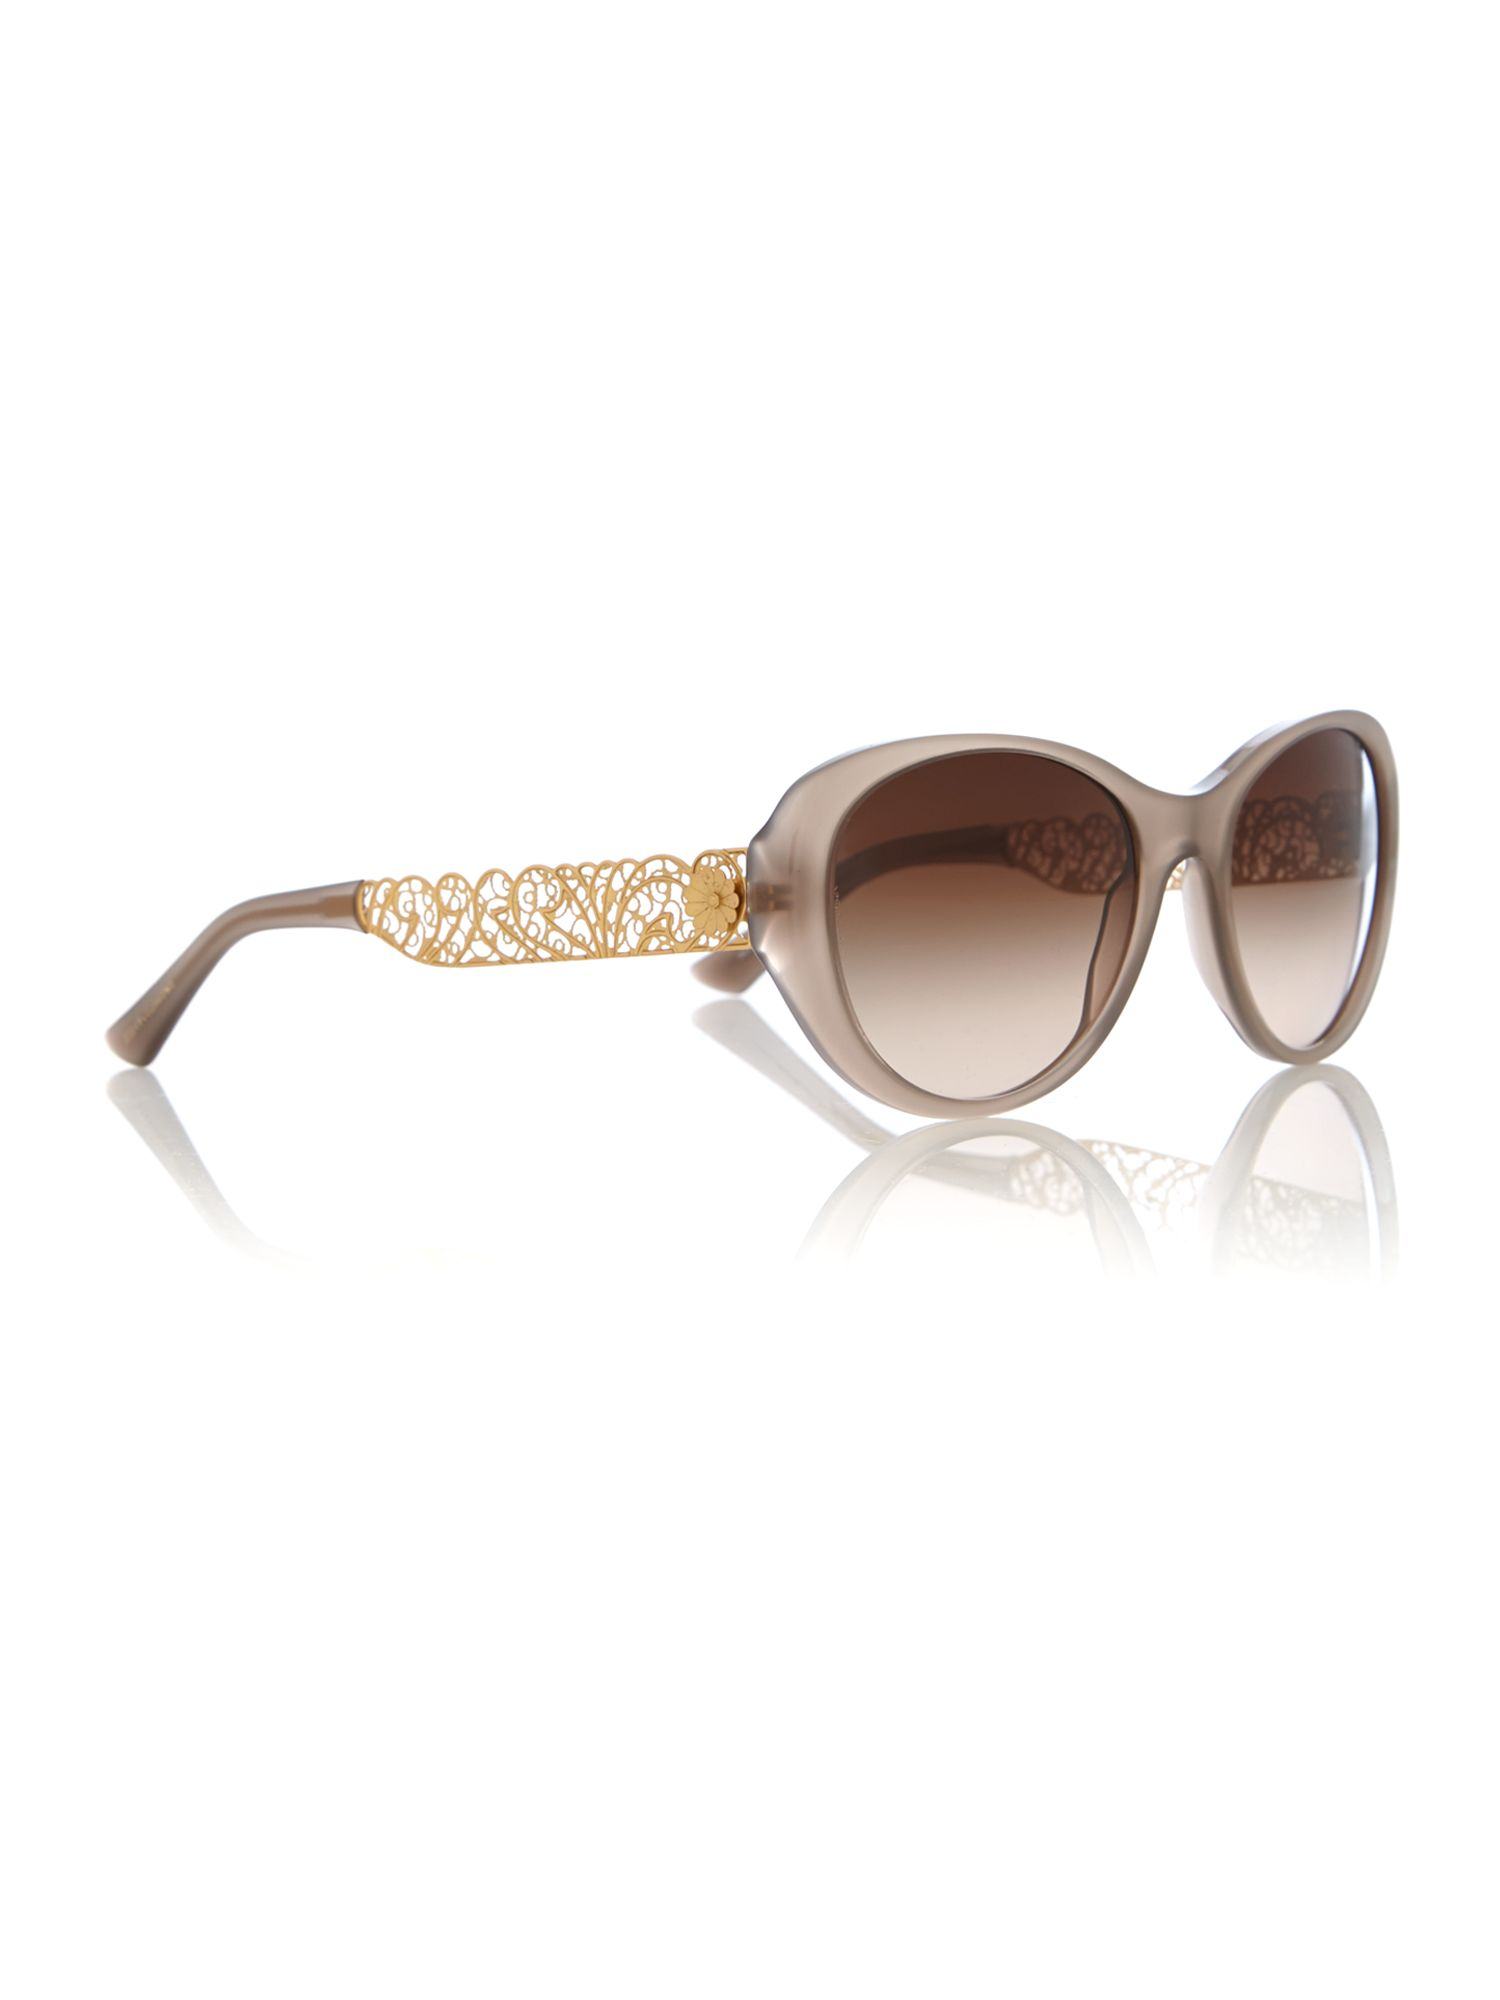 Ladies 0dg4213 sunglasses